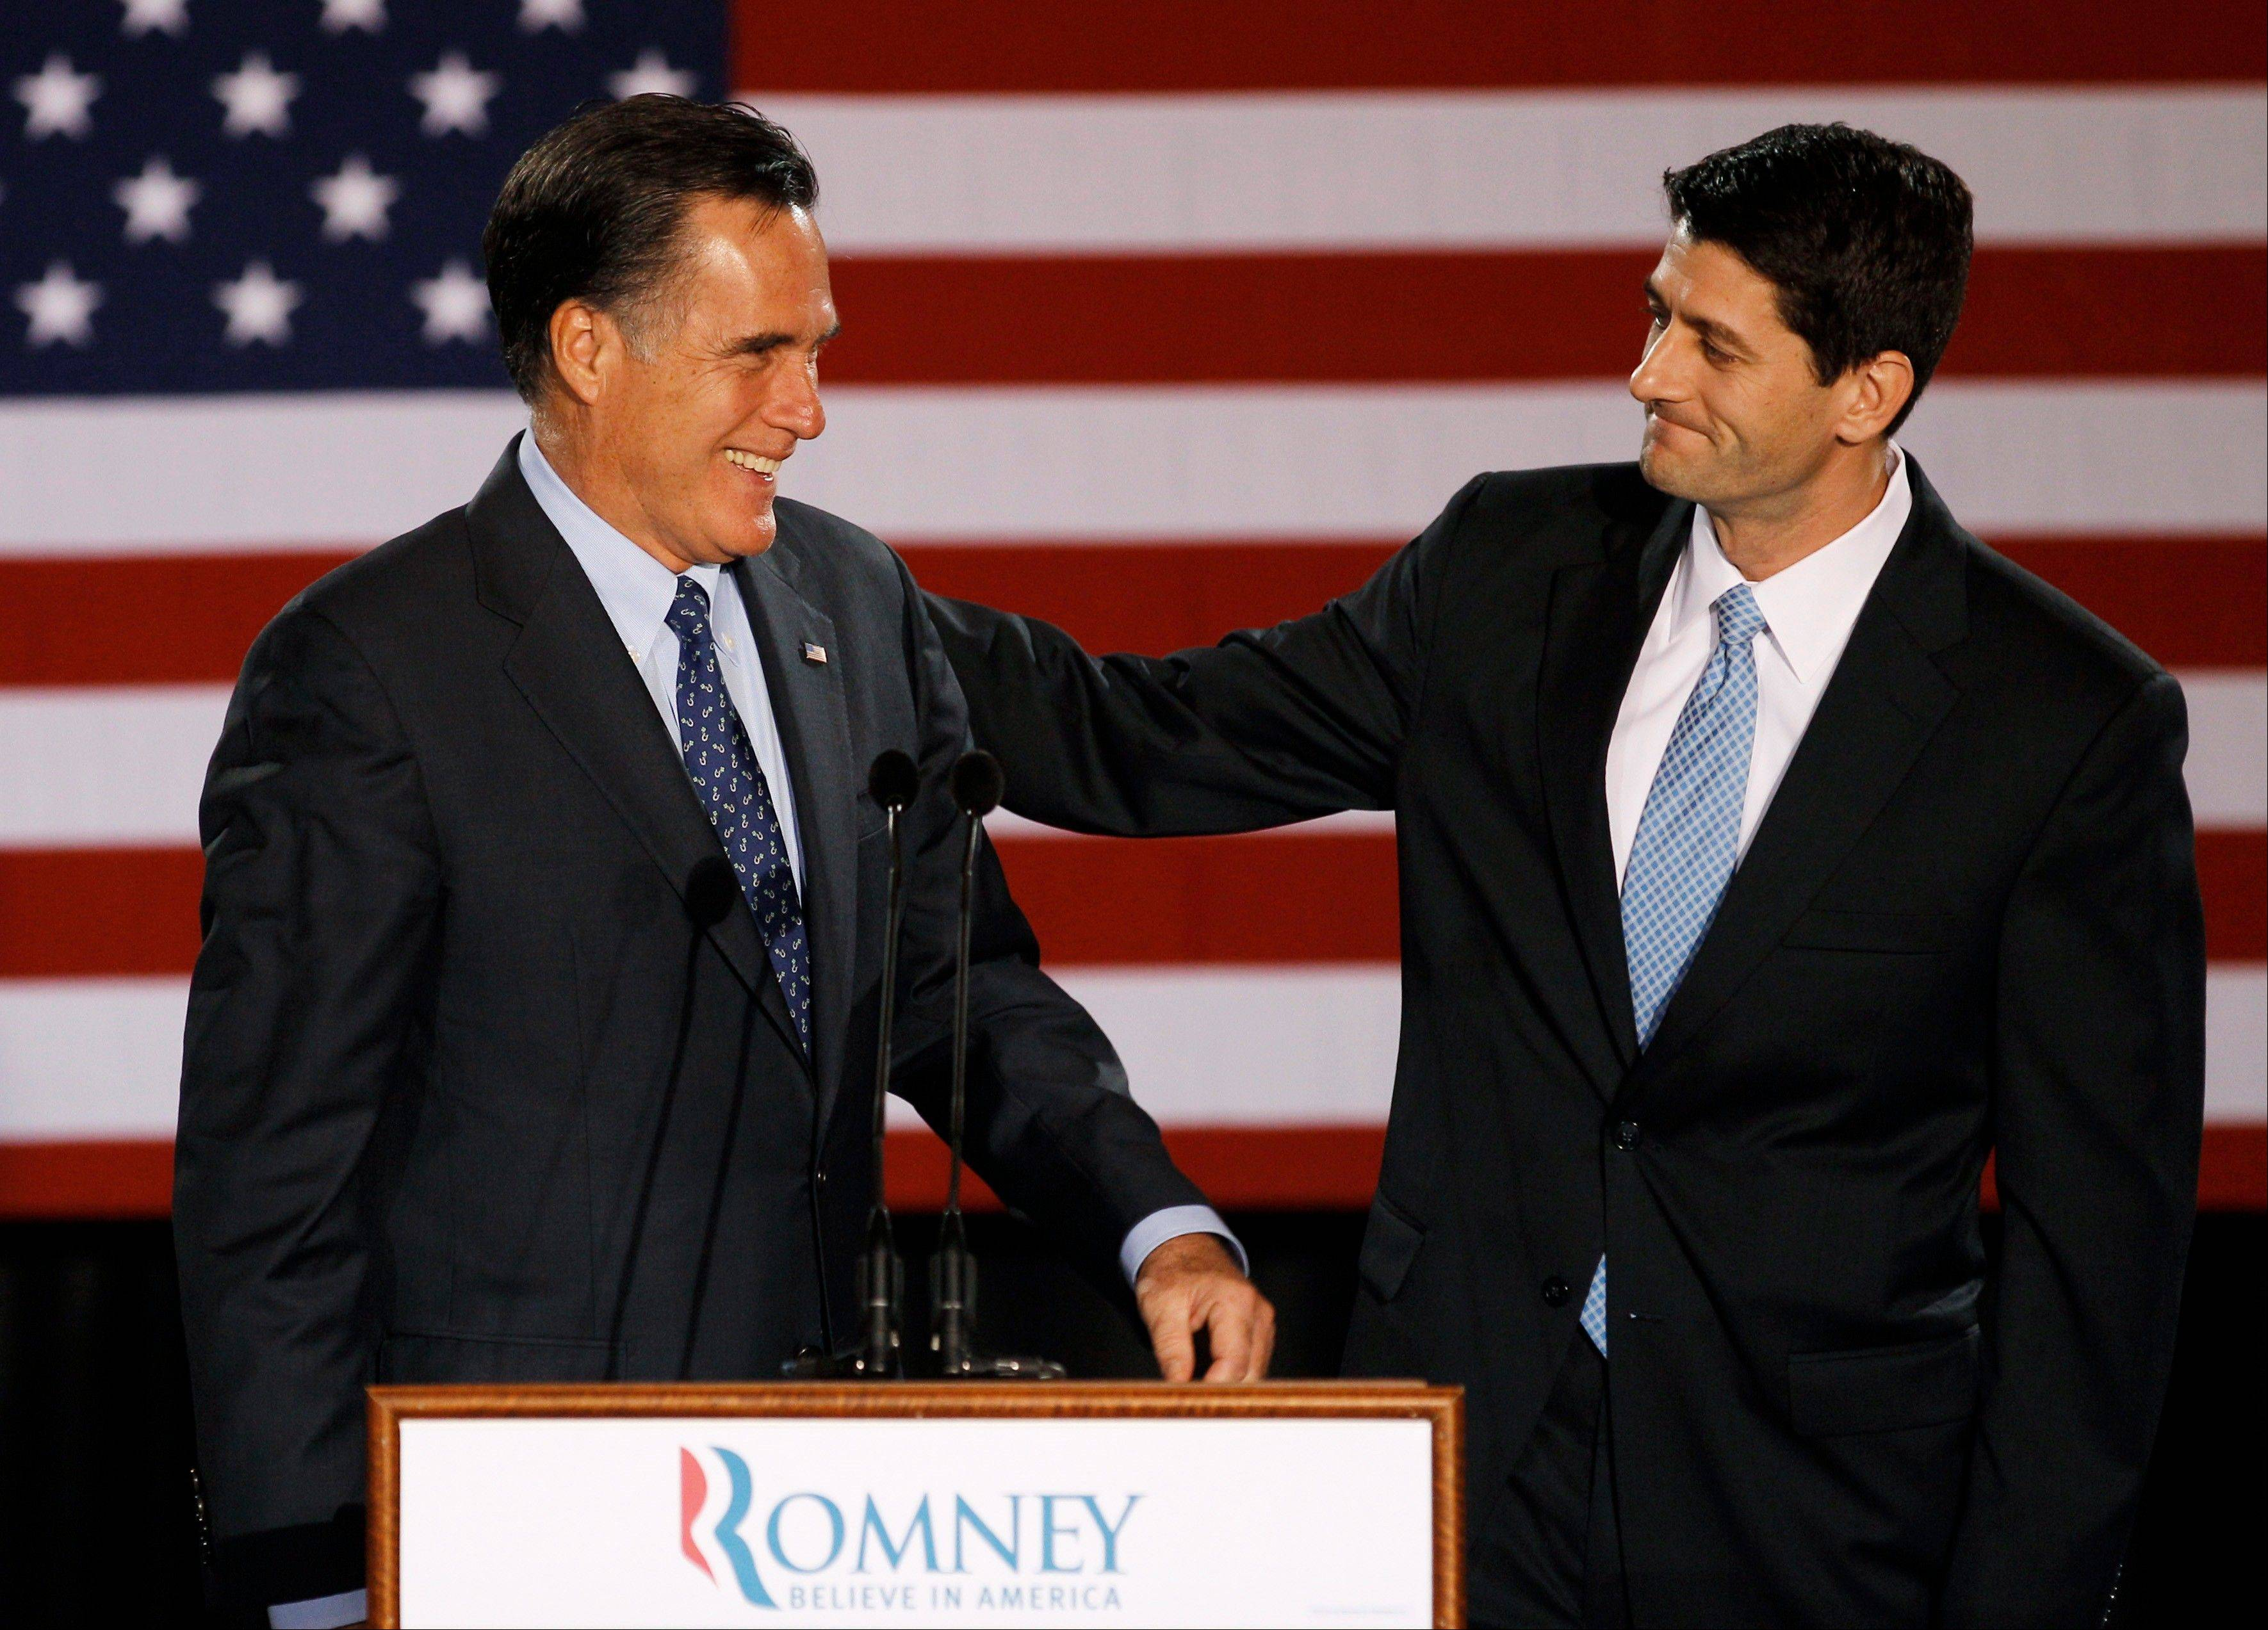 House Budget Committee Chairman Republican Rep. Paul Ryan of Wisconsin introduces Republican presidential candidate, former Massachusetts Gov. Mitt Romney before Romney spoke at the Grain Exchange in Milwaukee, in this April 3, 2012 file photo.